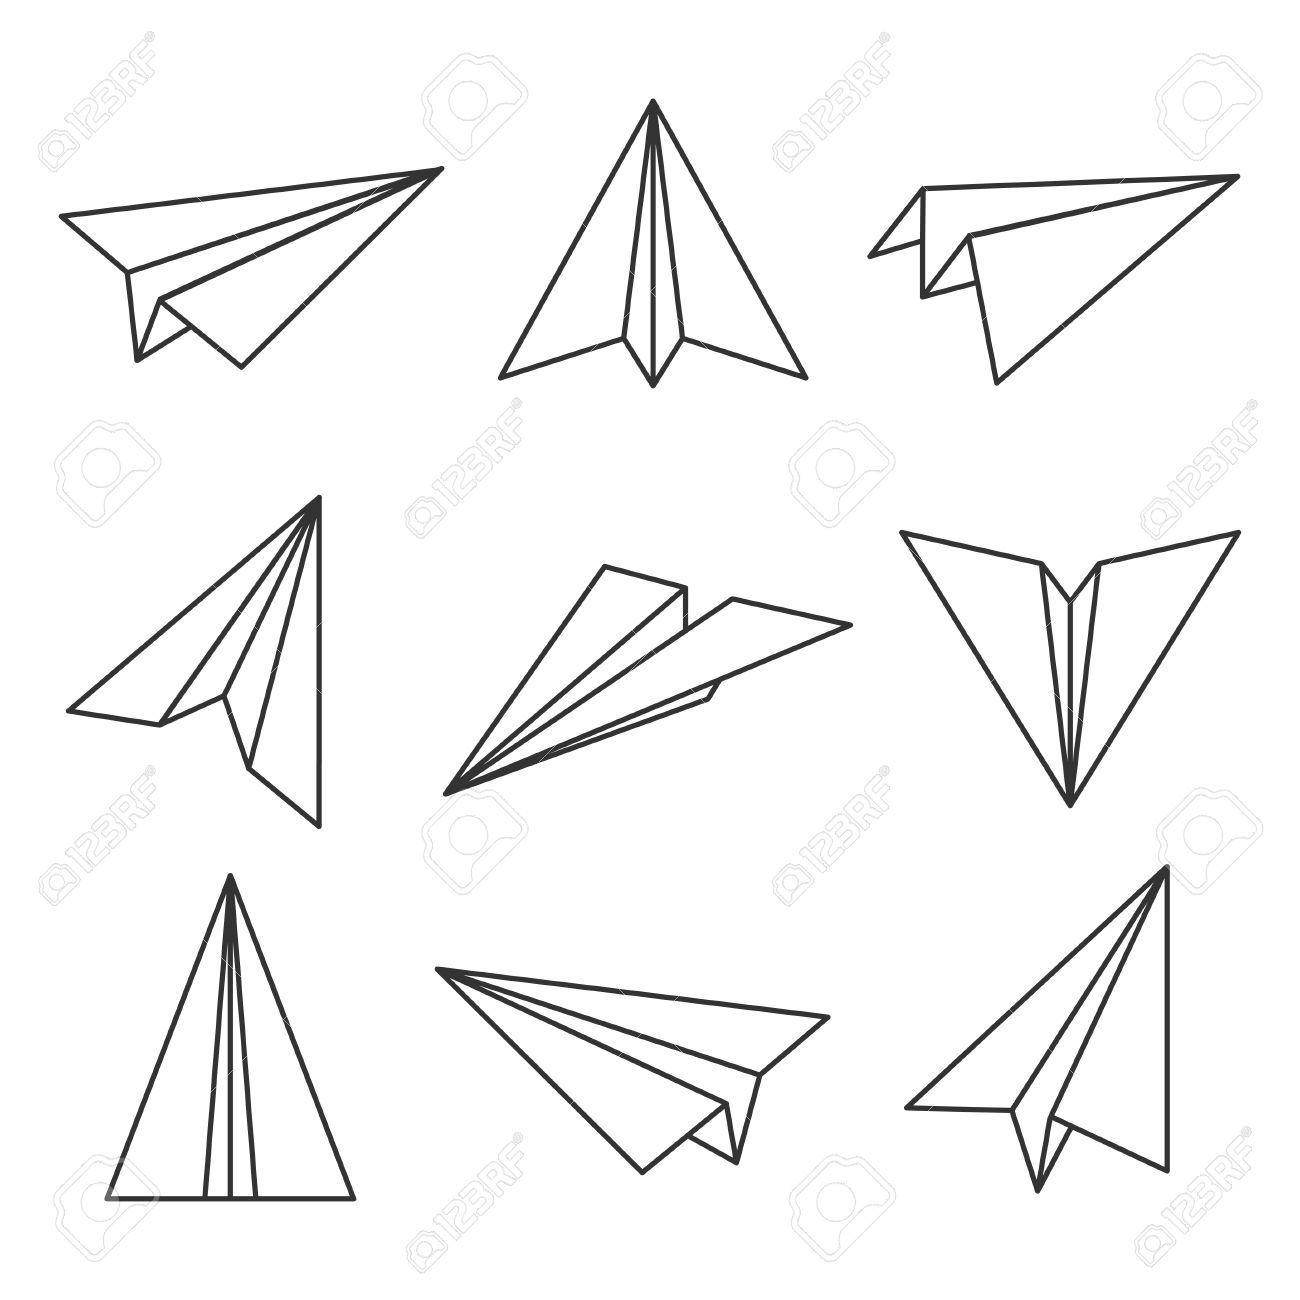 Easy Airplane Drawing At Getdrawings Free Download